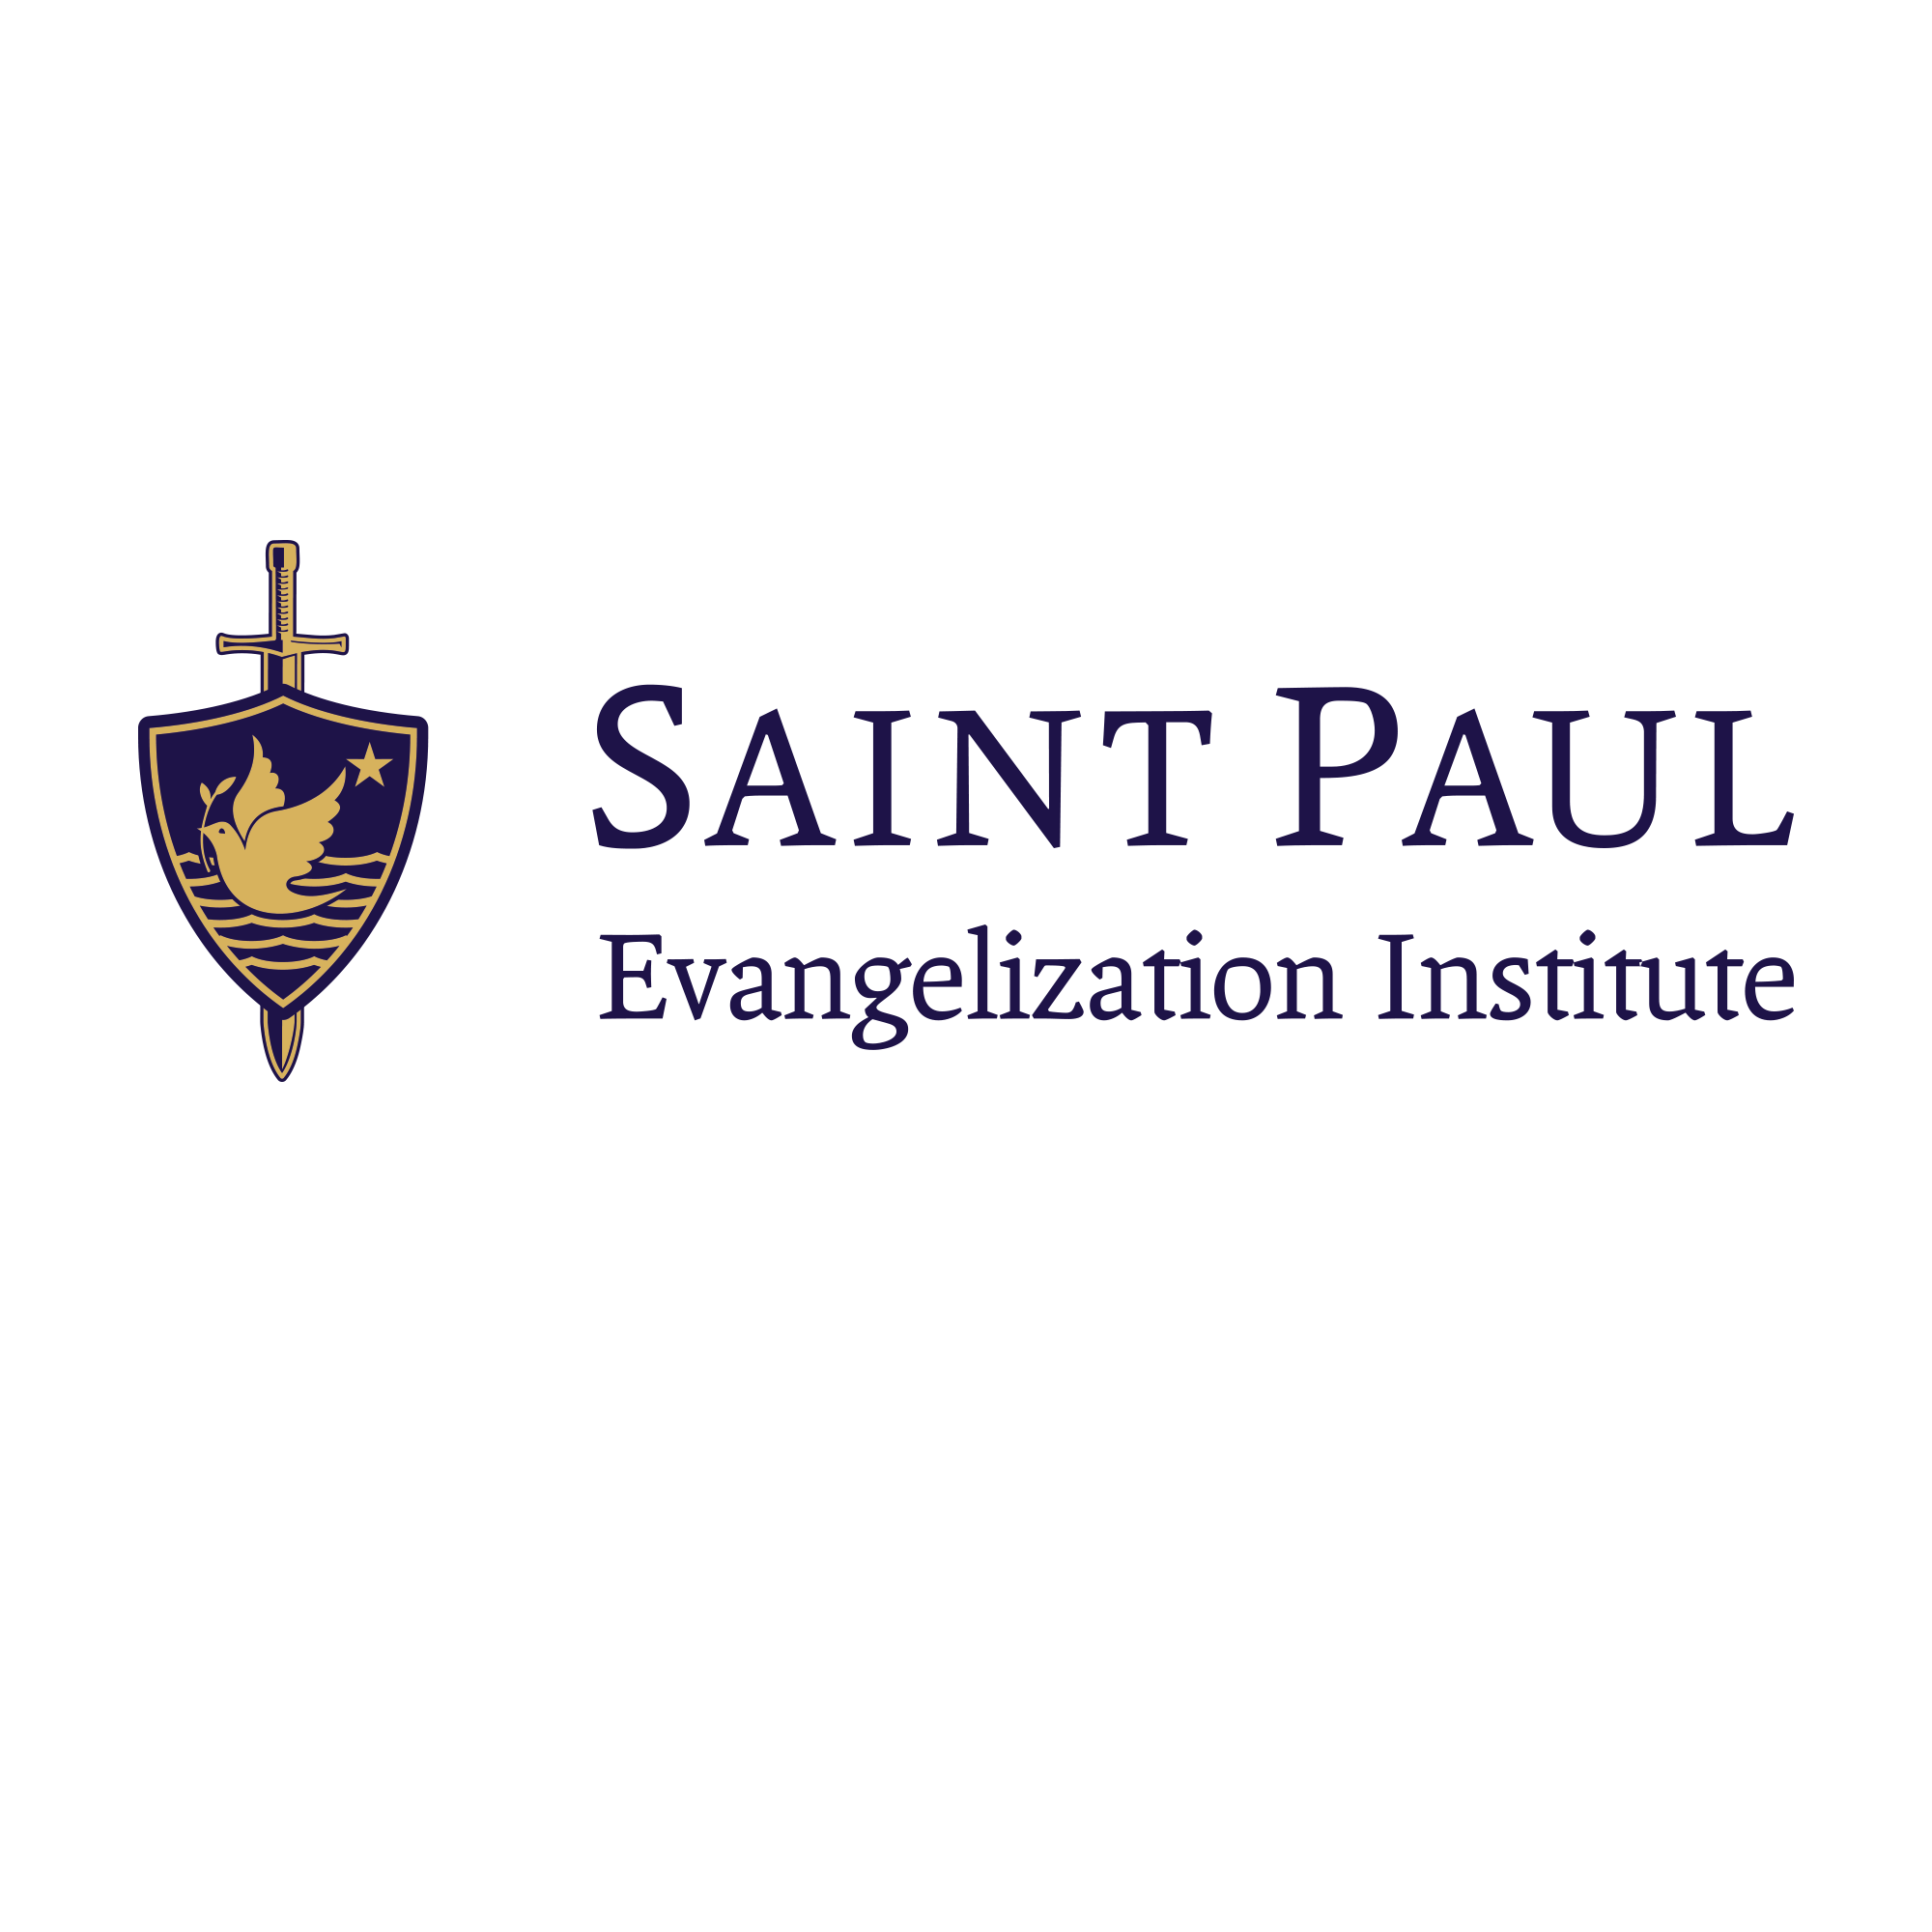 saint-paul-evangelization-inst-2